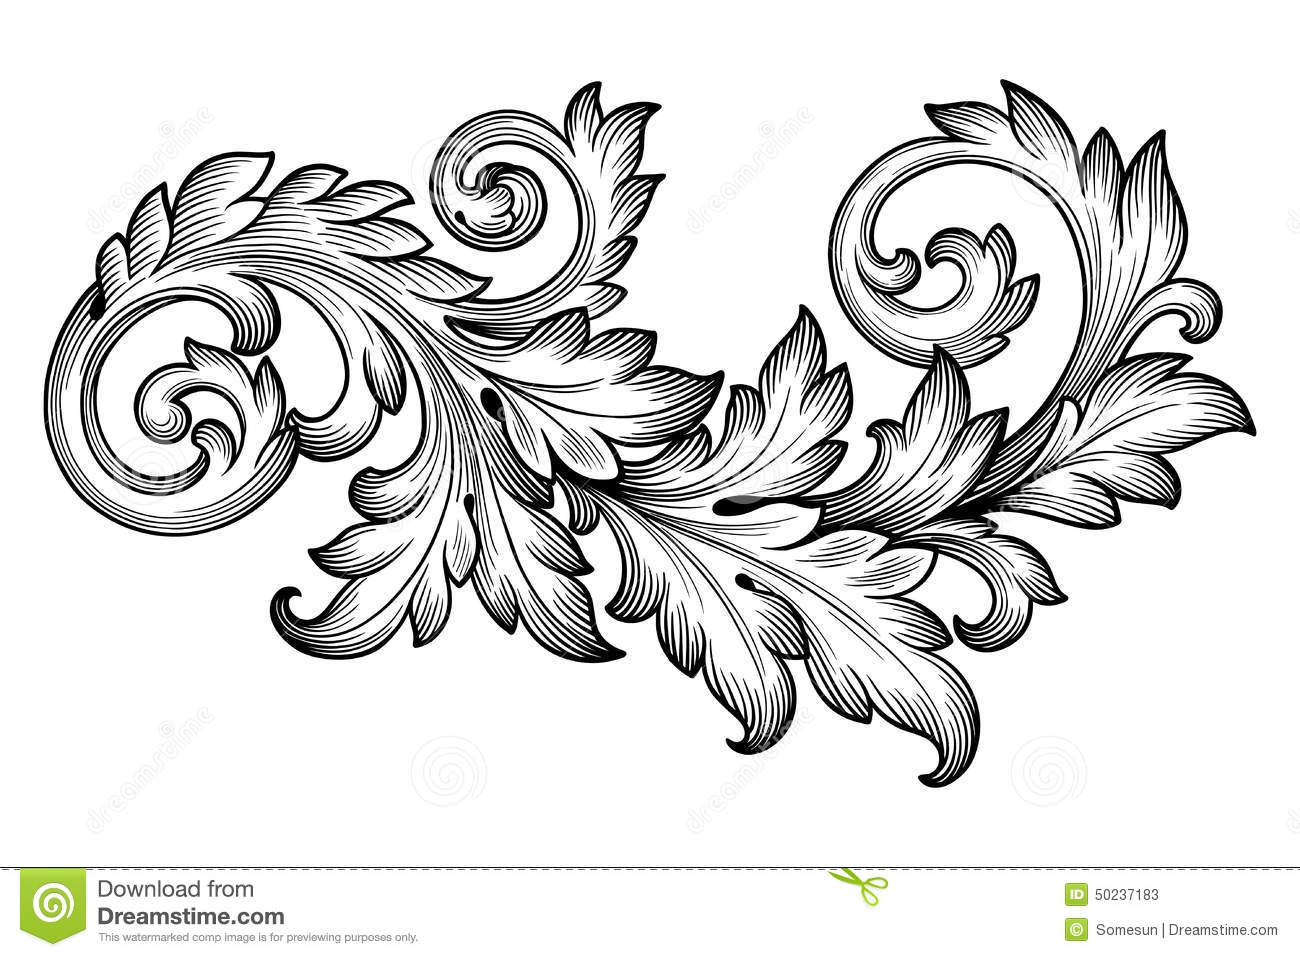 Download Vintage Baroque Foliage Floral Scroll Ornament Vector Stock Vector - Illustration of branch, acanthus: 50237183